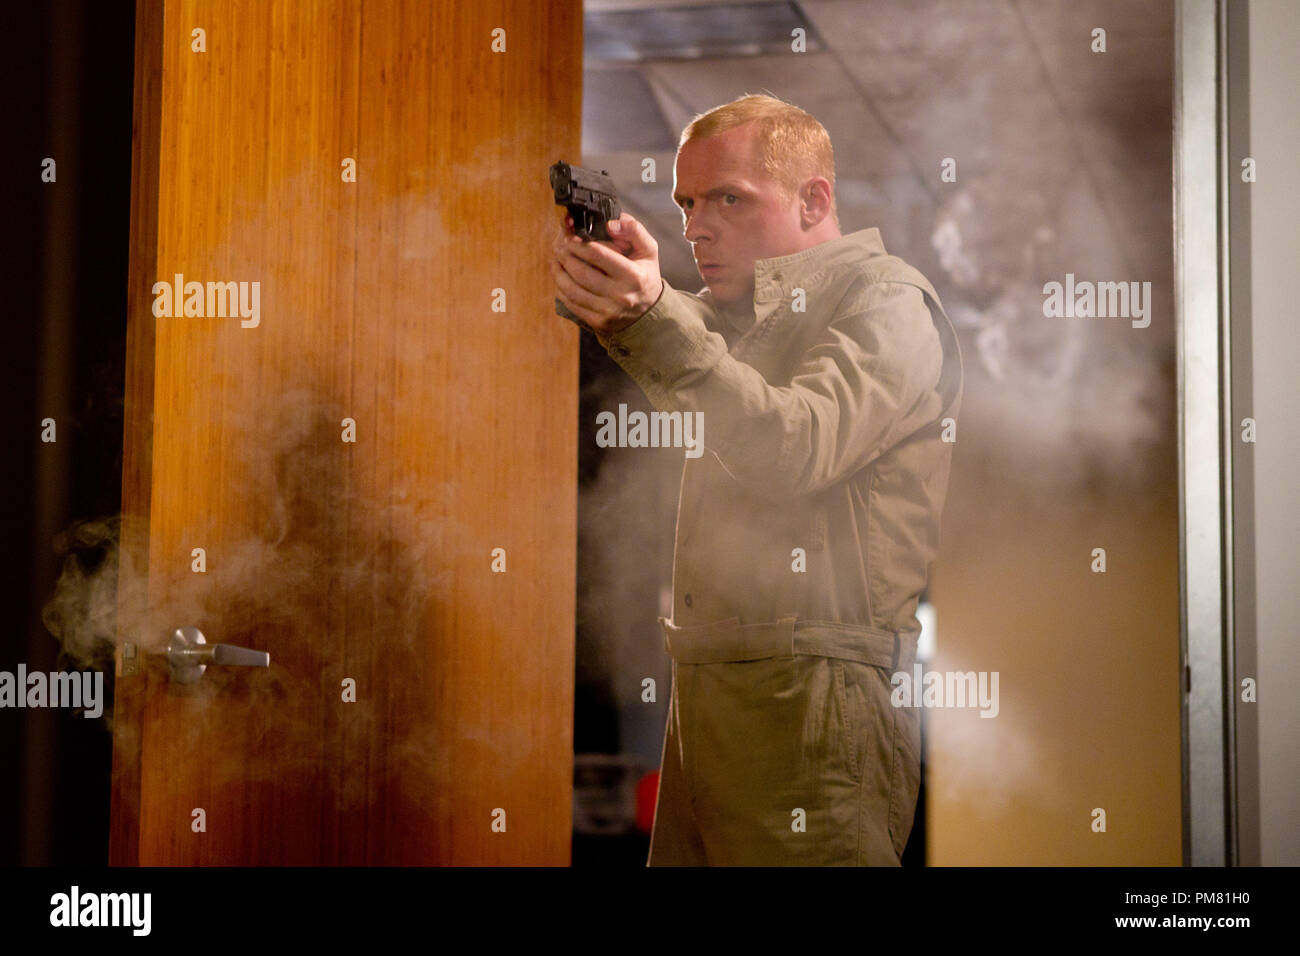 Simon Pegg plays Benji in MISSION: IMPOSSIBLE – GHOST PROTOCOL, from Paramount Pictures and Skydance Productions. - Stock Image